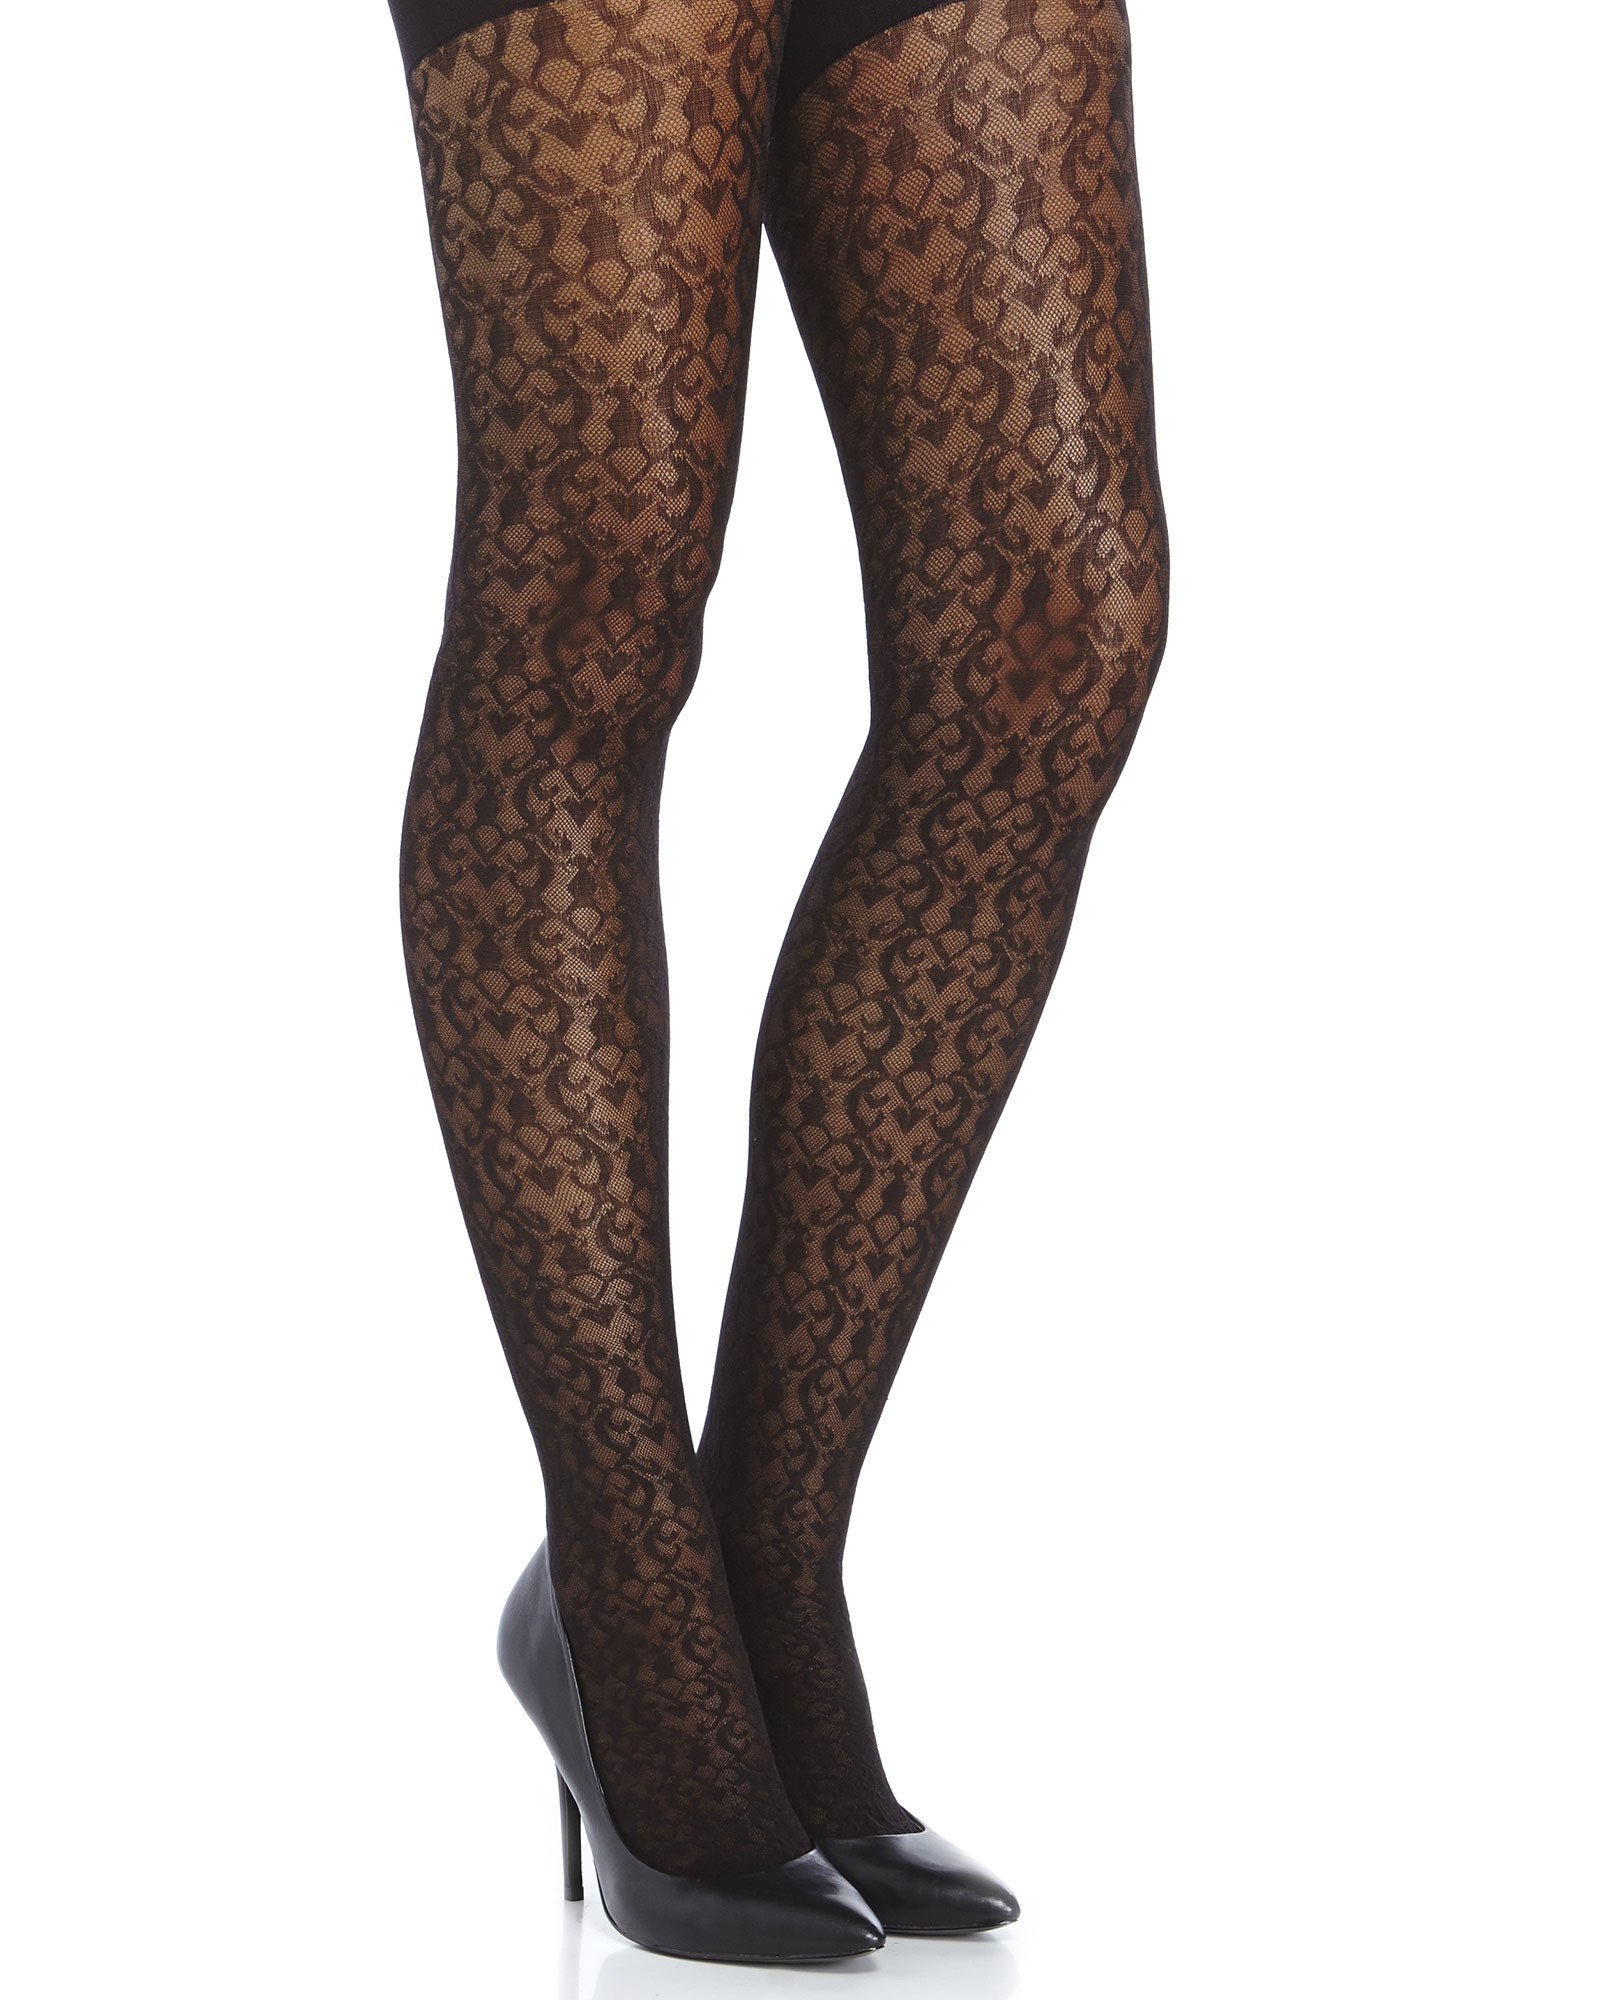 914abcc2486ac Spanx Black Filagree Patterned Tight-End Tights in Black - Lyst